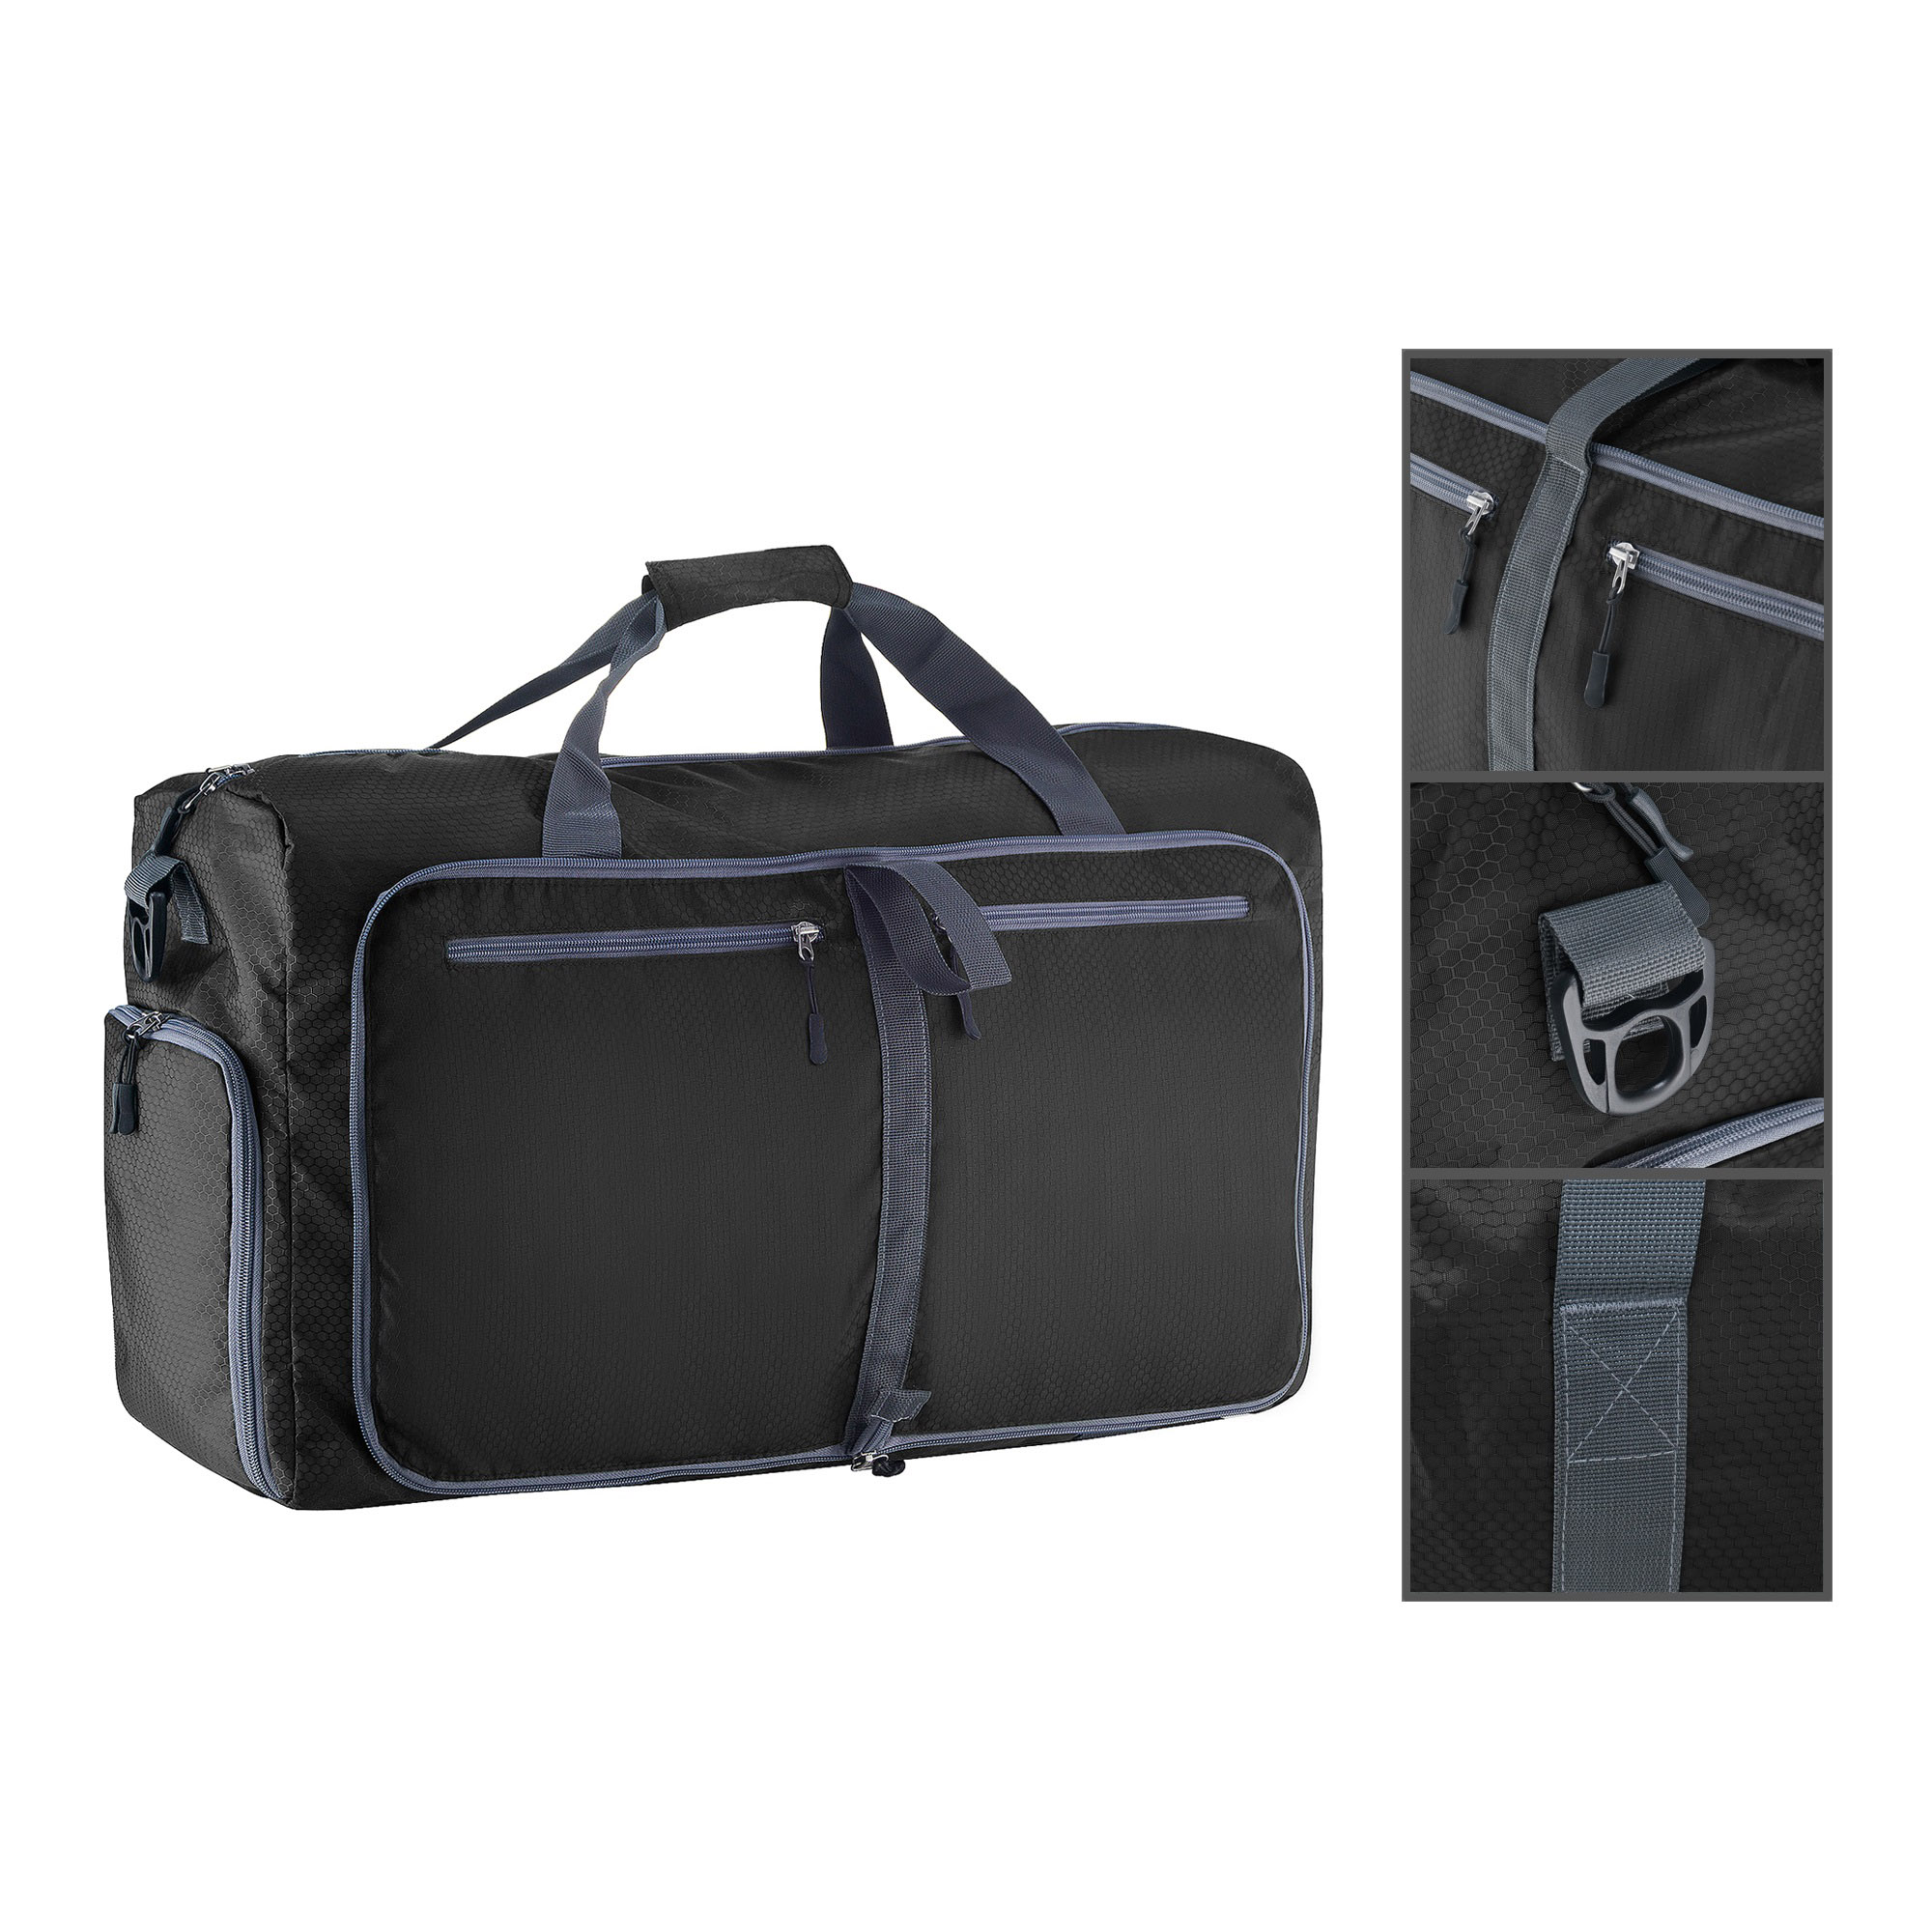 c74e079ebb02 Duffle Gym Bag - Luggage Tote for Overnight   Weekend Trips - Includes Shoe  Compartment and Outer Pockets for Storage by Wakeman Outdoors - Walmart.com